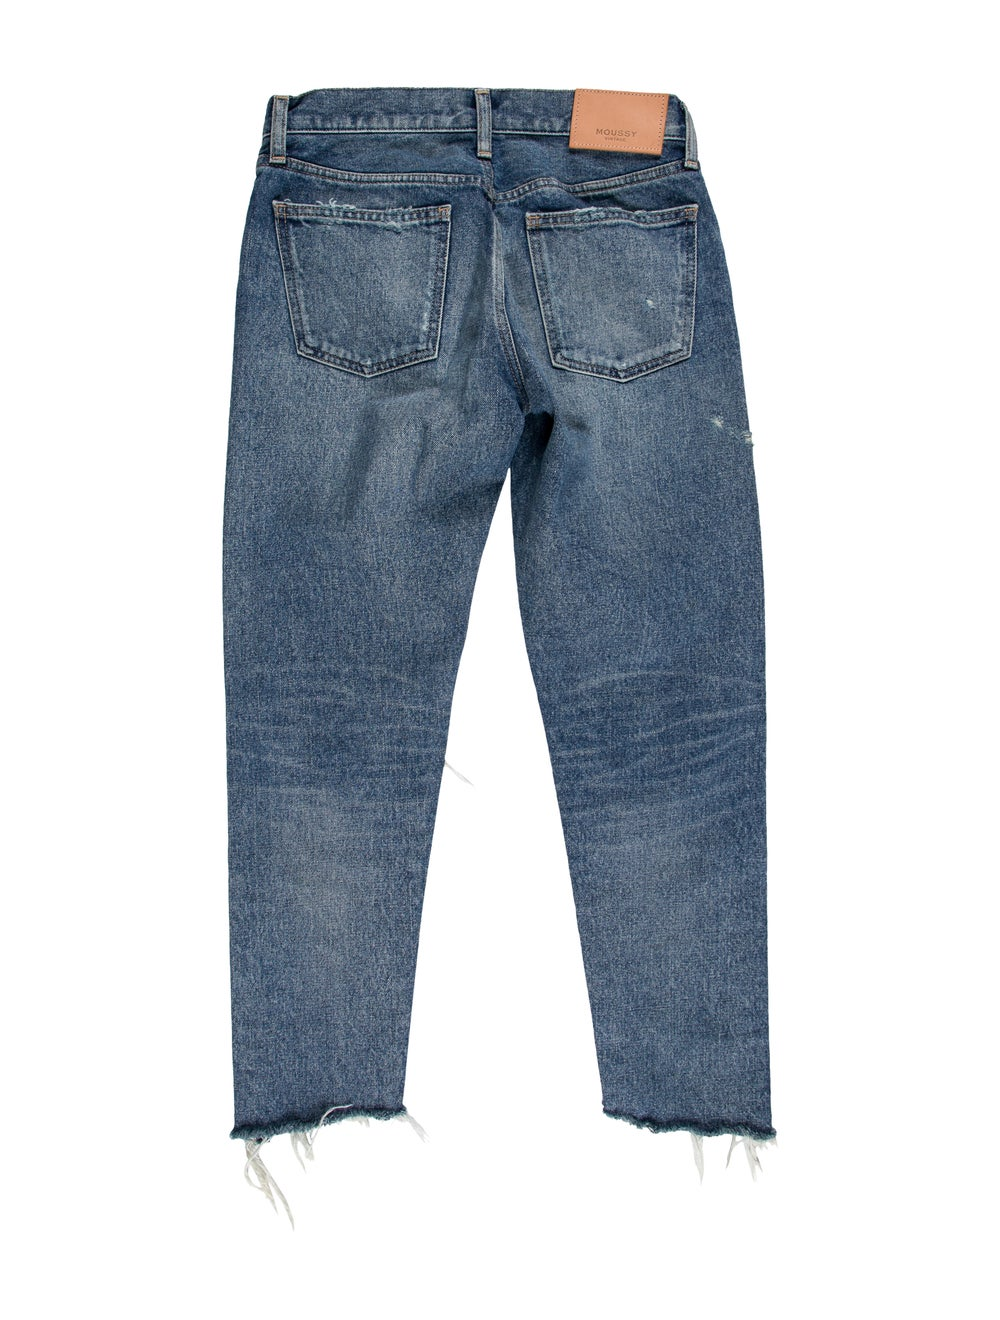 Moussy Mid-Rise Straight Leg Jeans Blue - image 2